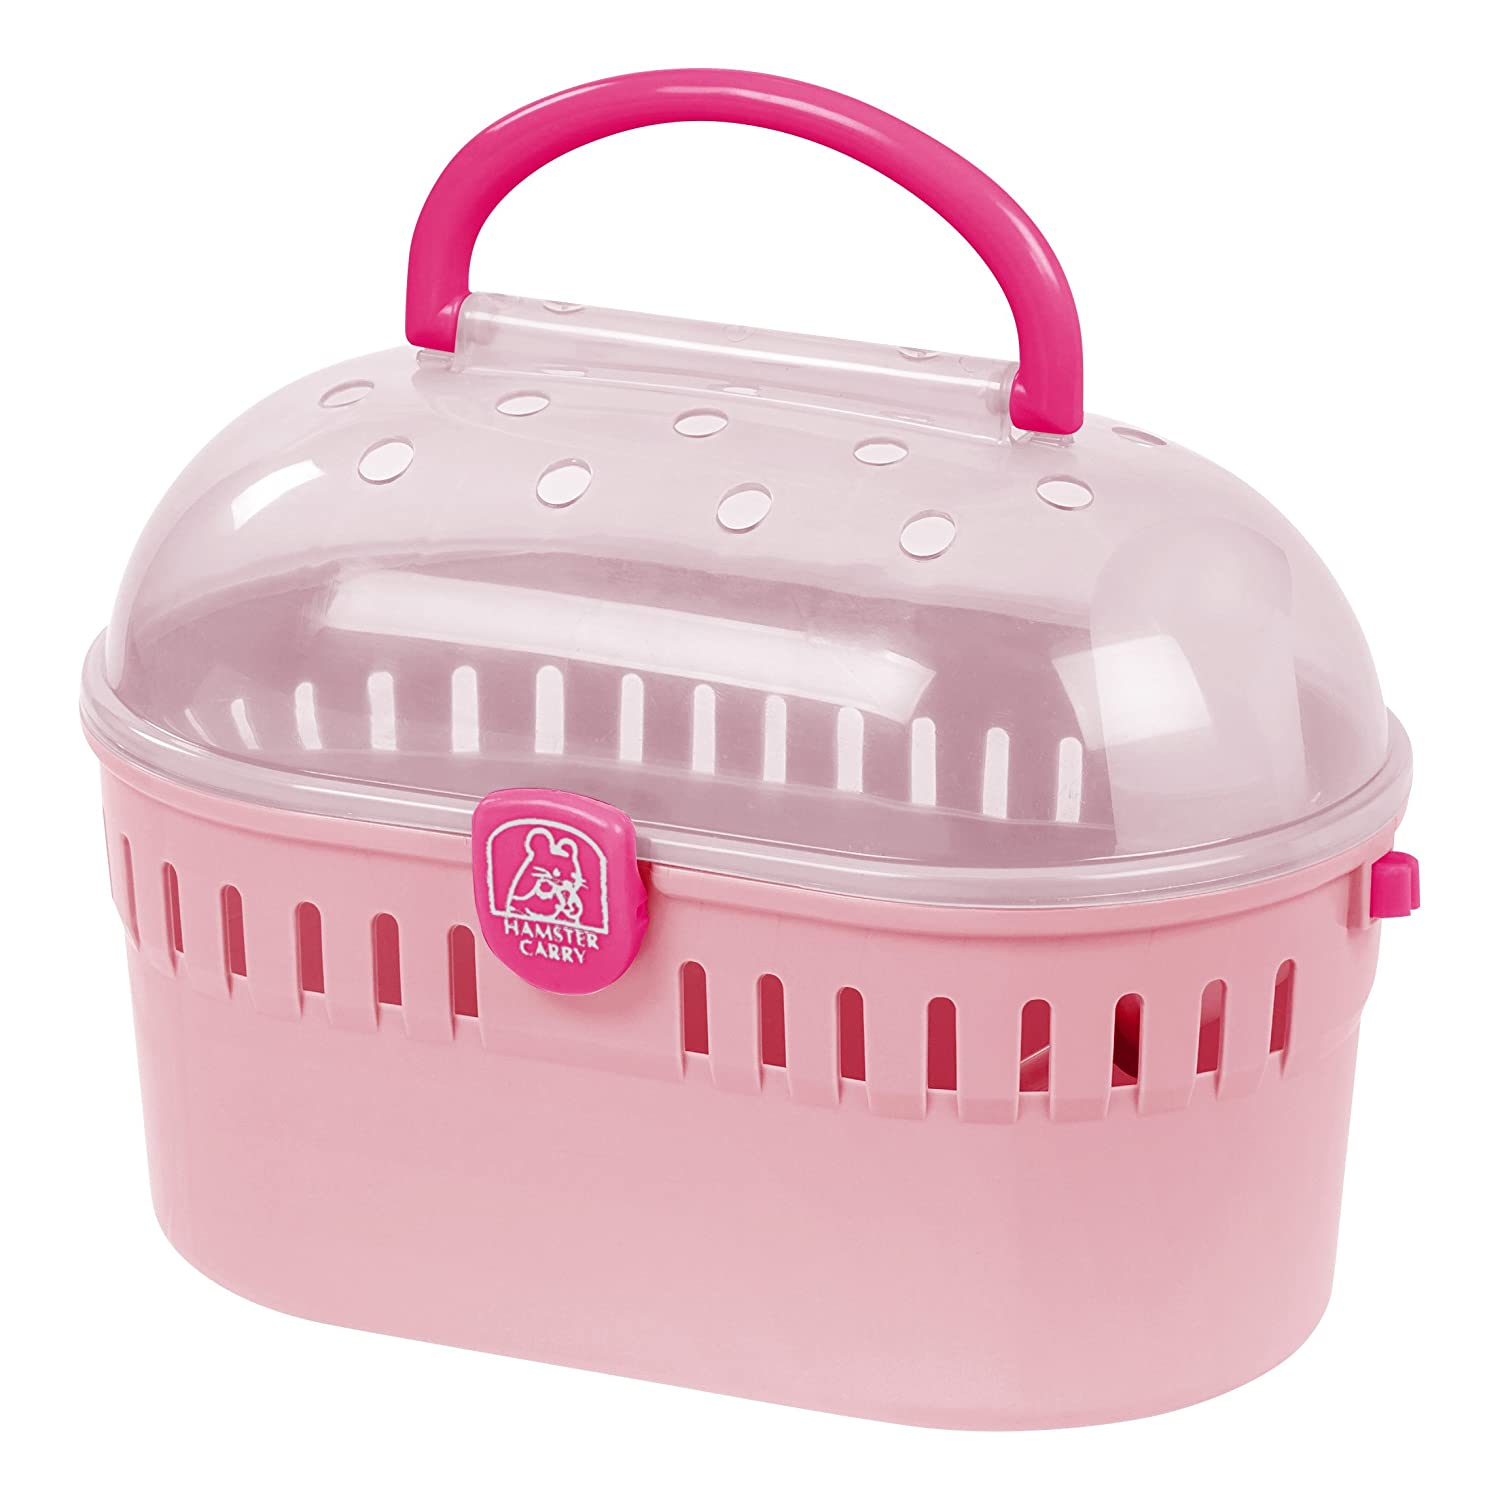 IRIS Extra Small Animal and Critter Carrier Pink IRIS USA 301190